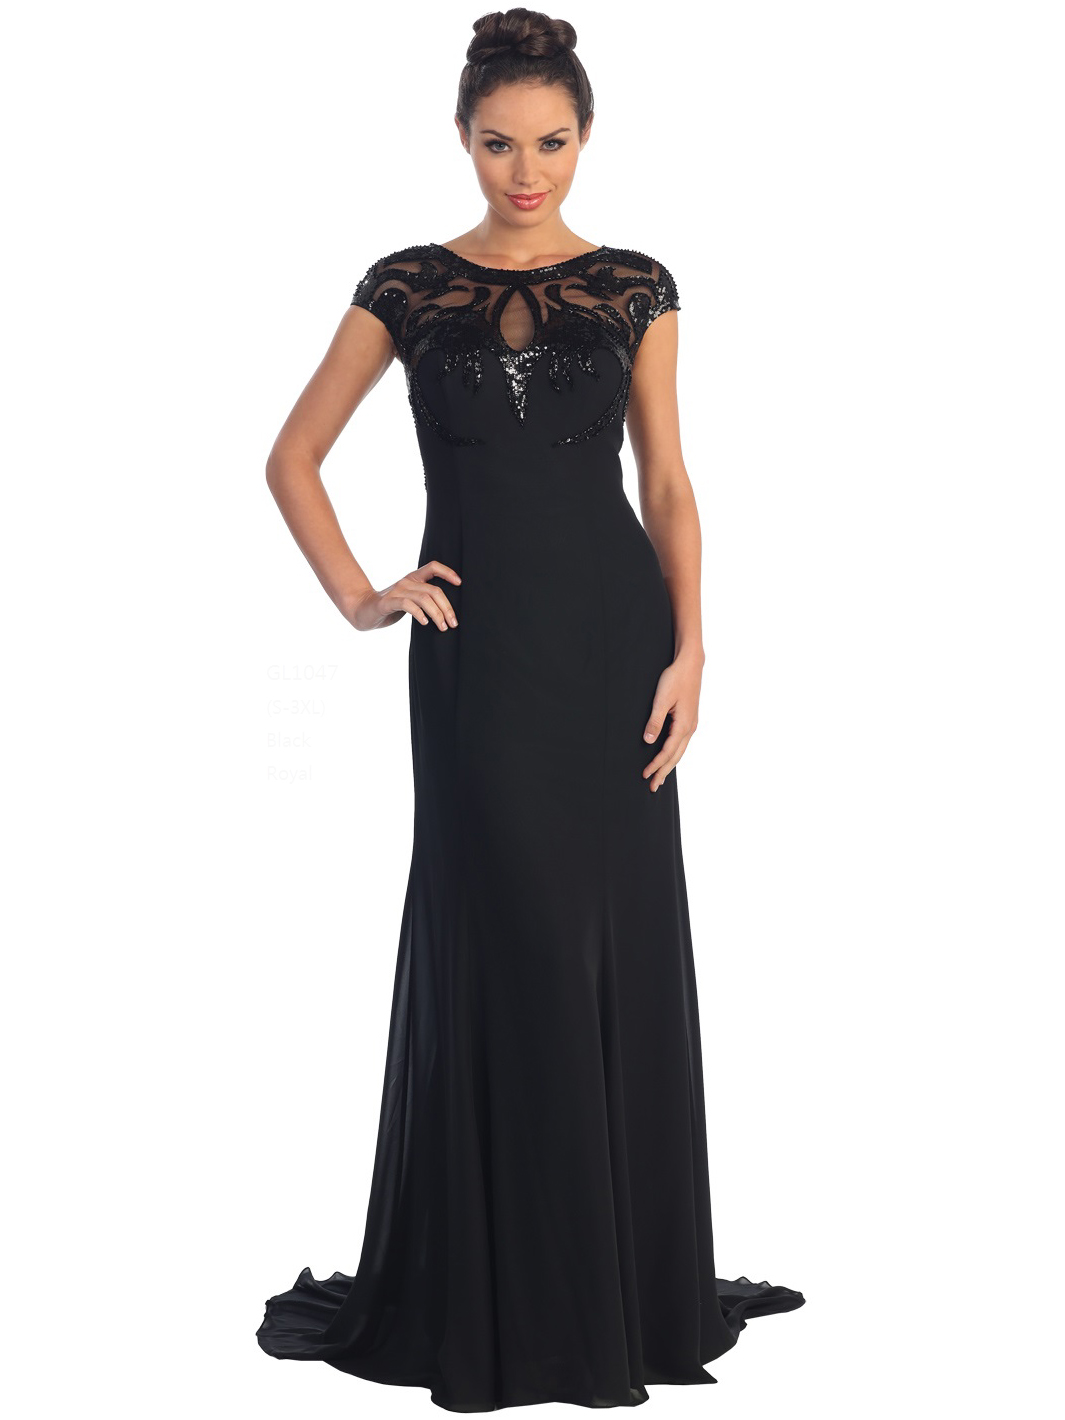 Boatneck Evening Dress | Sung Boutique L.A.